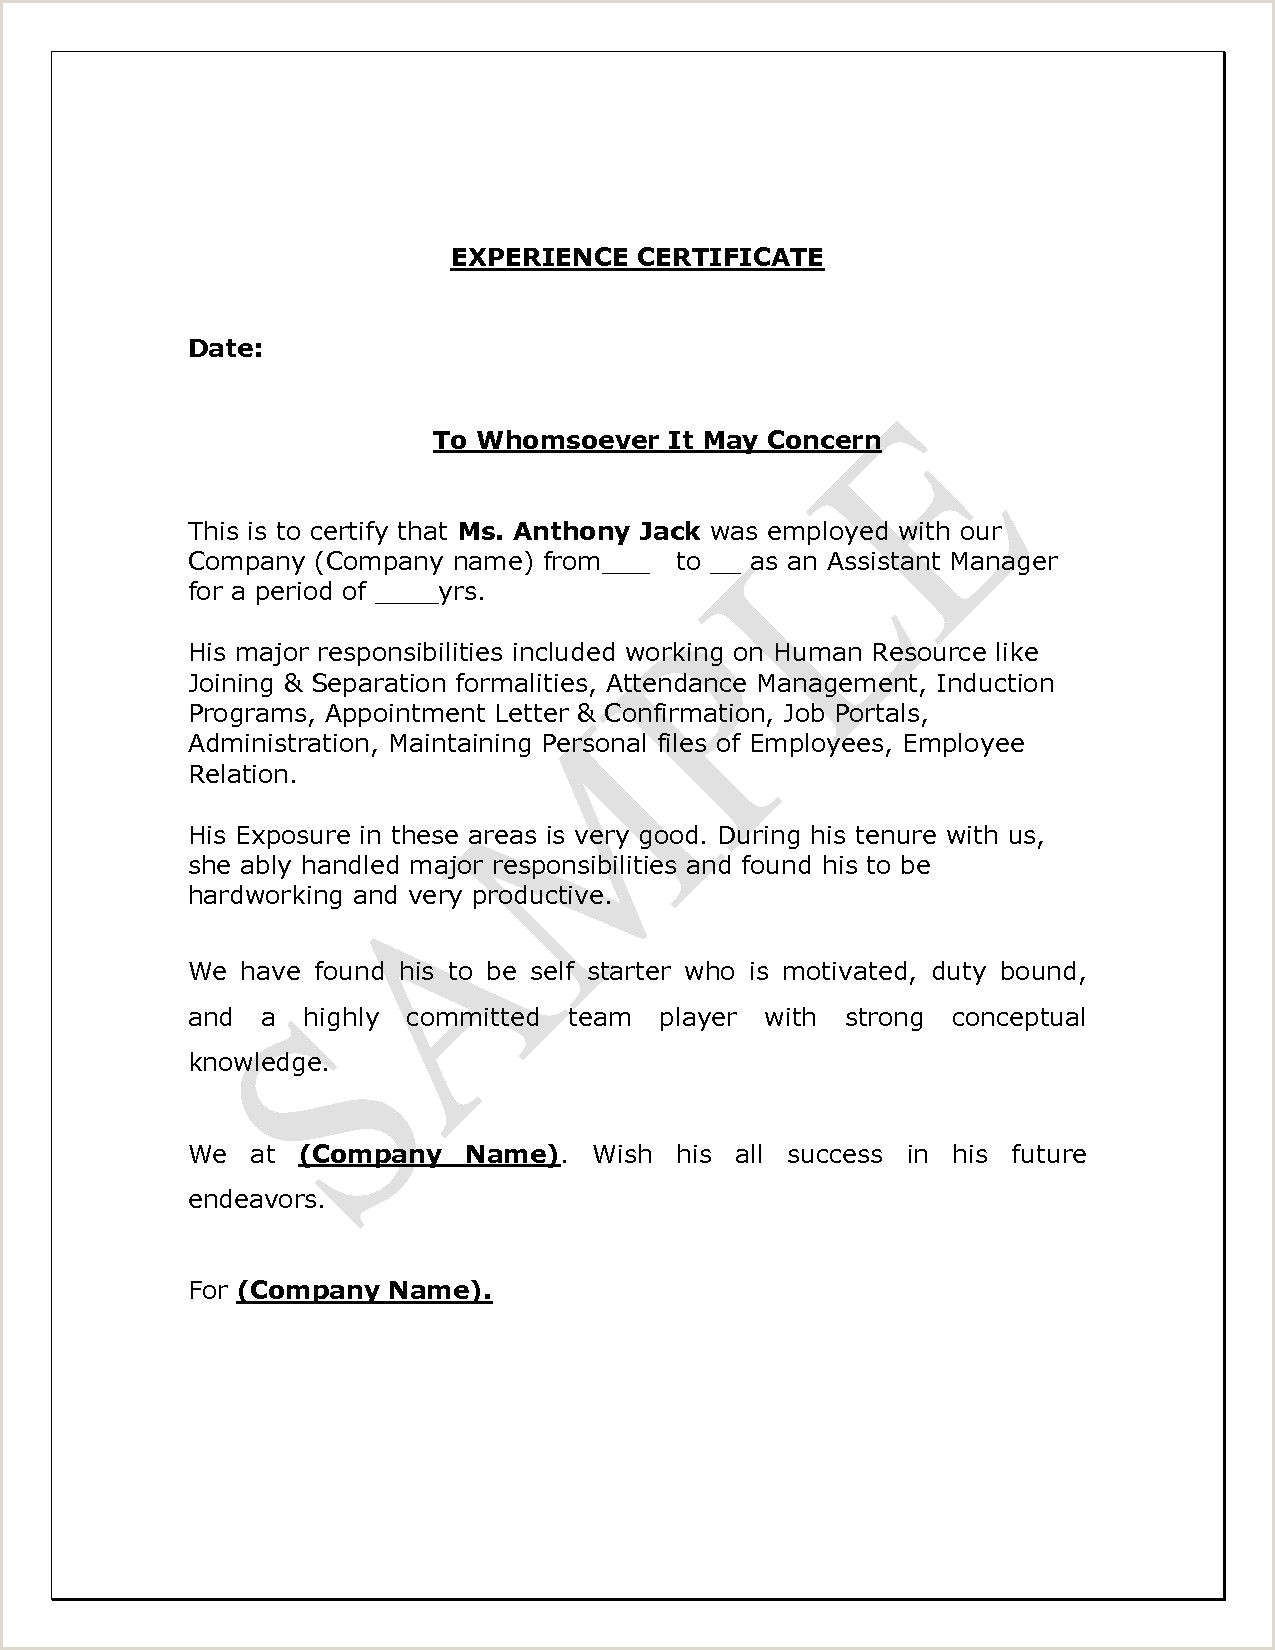 Applying for A Supervisory Position No Experience Experience Letter format Supervisor Copy Experience